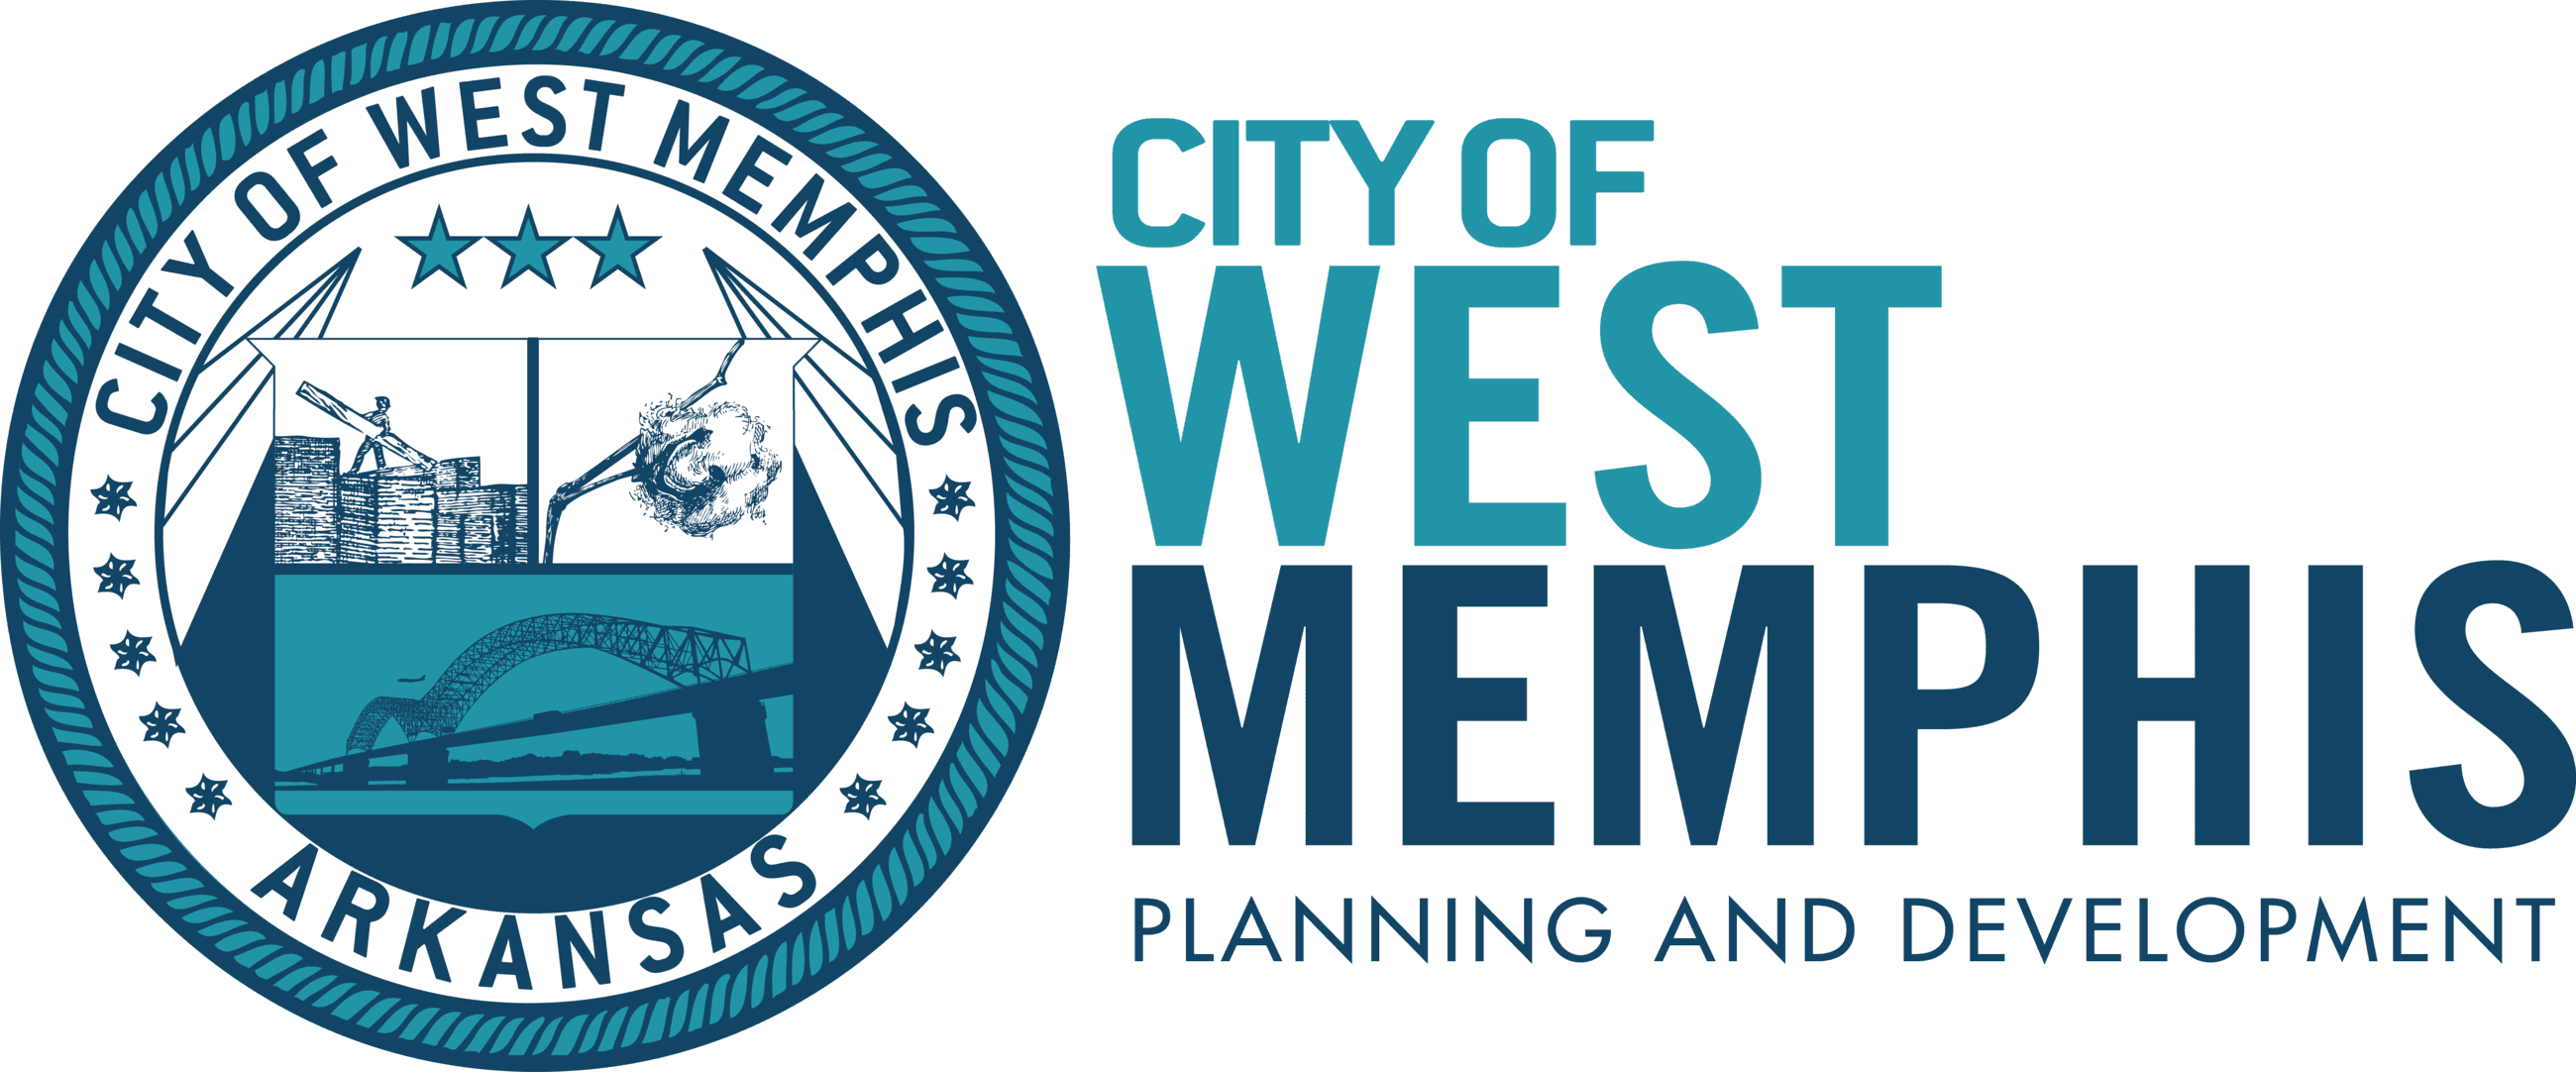 West Memphis Planning and Development logo